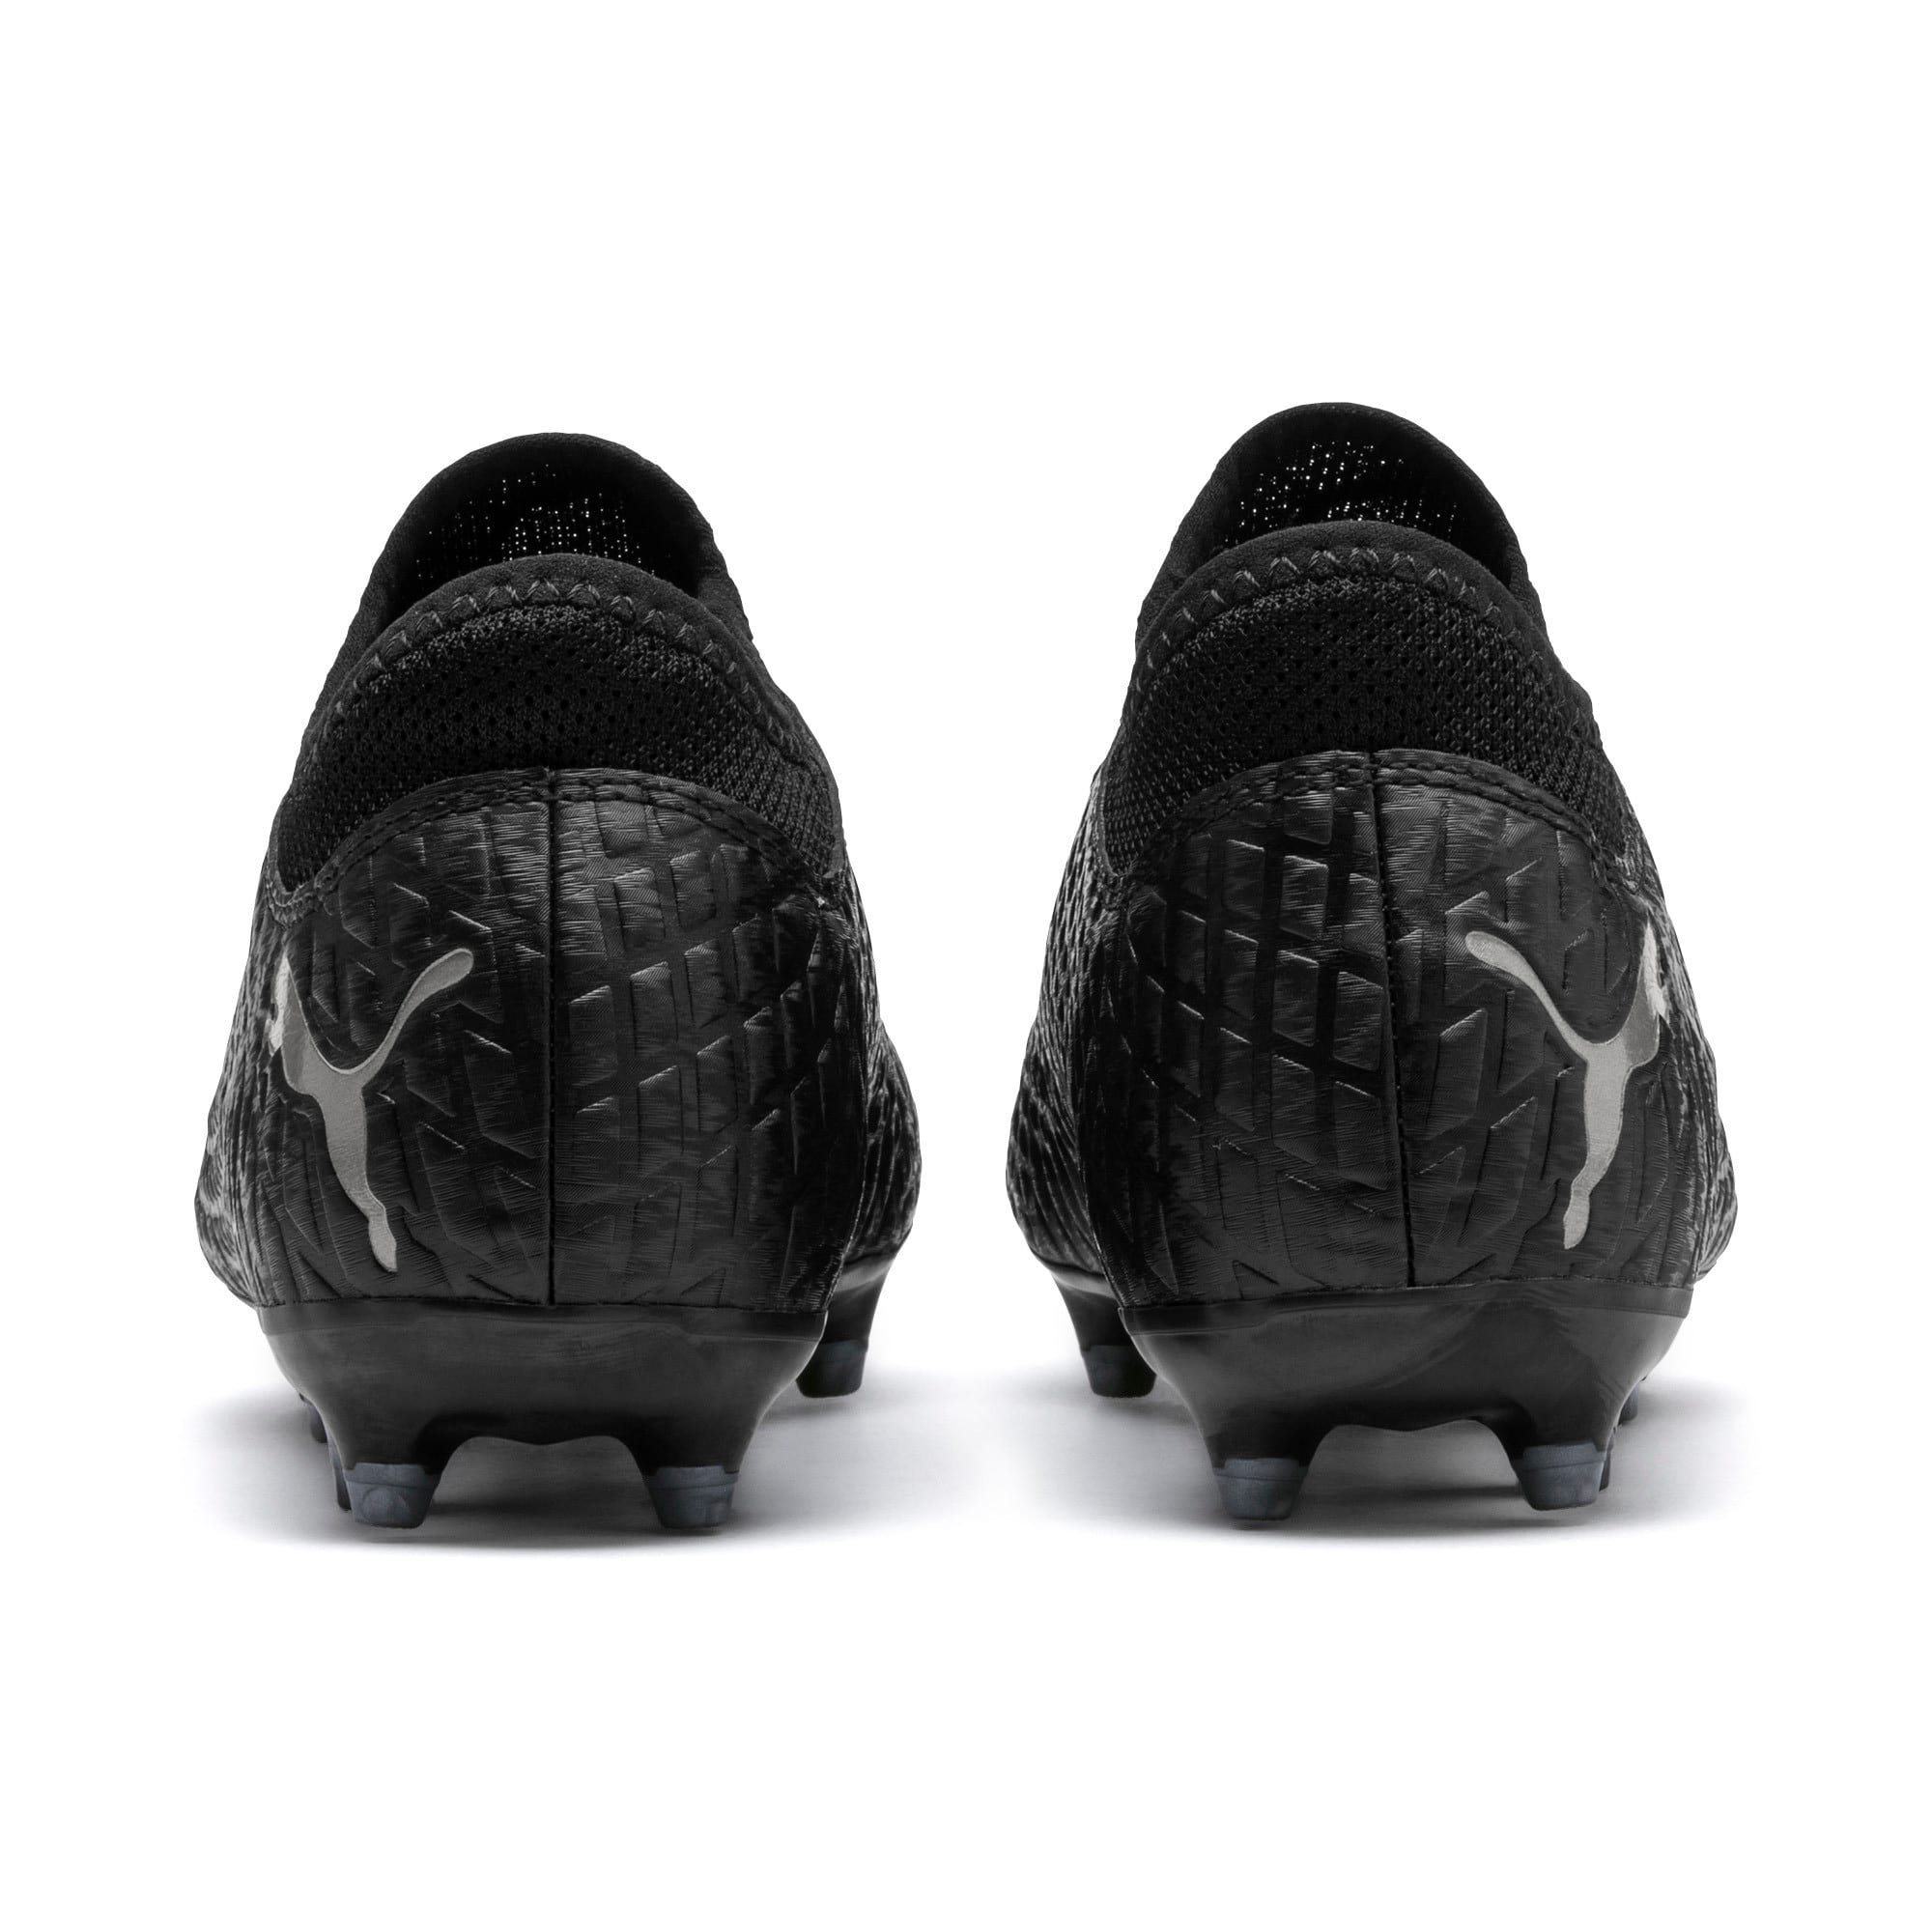 FUTURE 4.4 Youth Football Boots, Black-Black-Puma Aged Silver, large